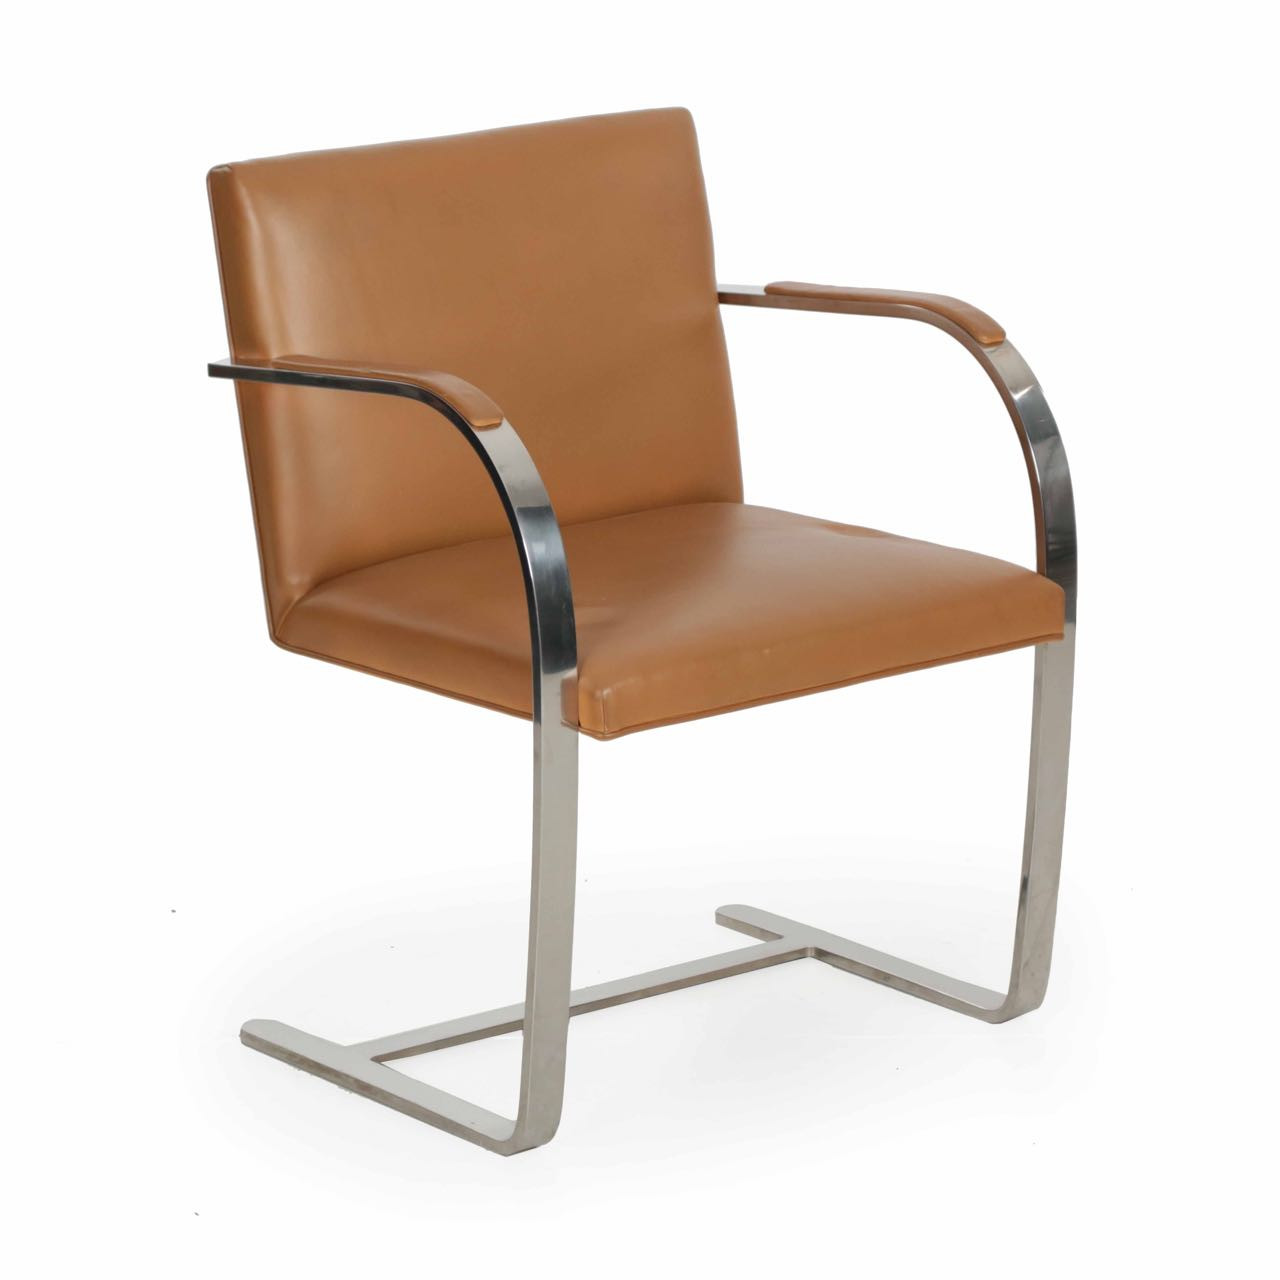 Remarkable Vintage Mies Van Der Rohe For Knoll Leather Brno Arm Chair Short Links Chair Design For Home Short Linksinfo